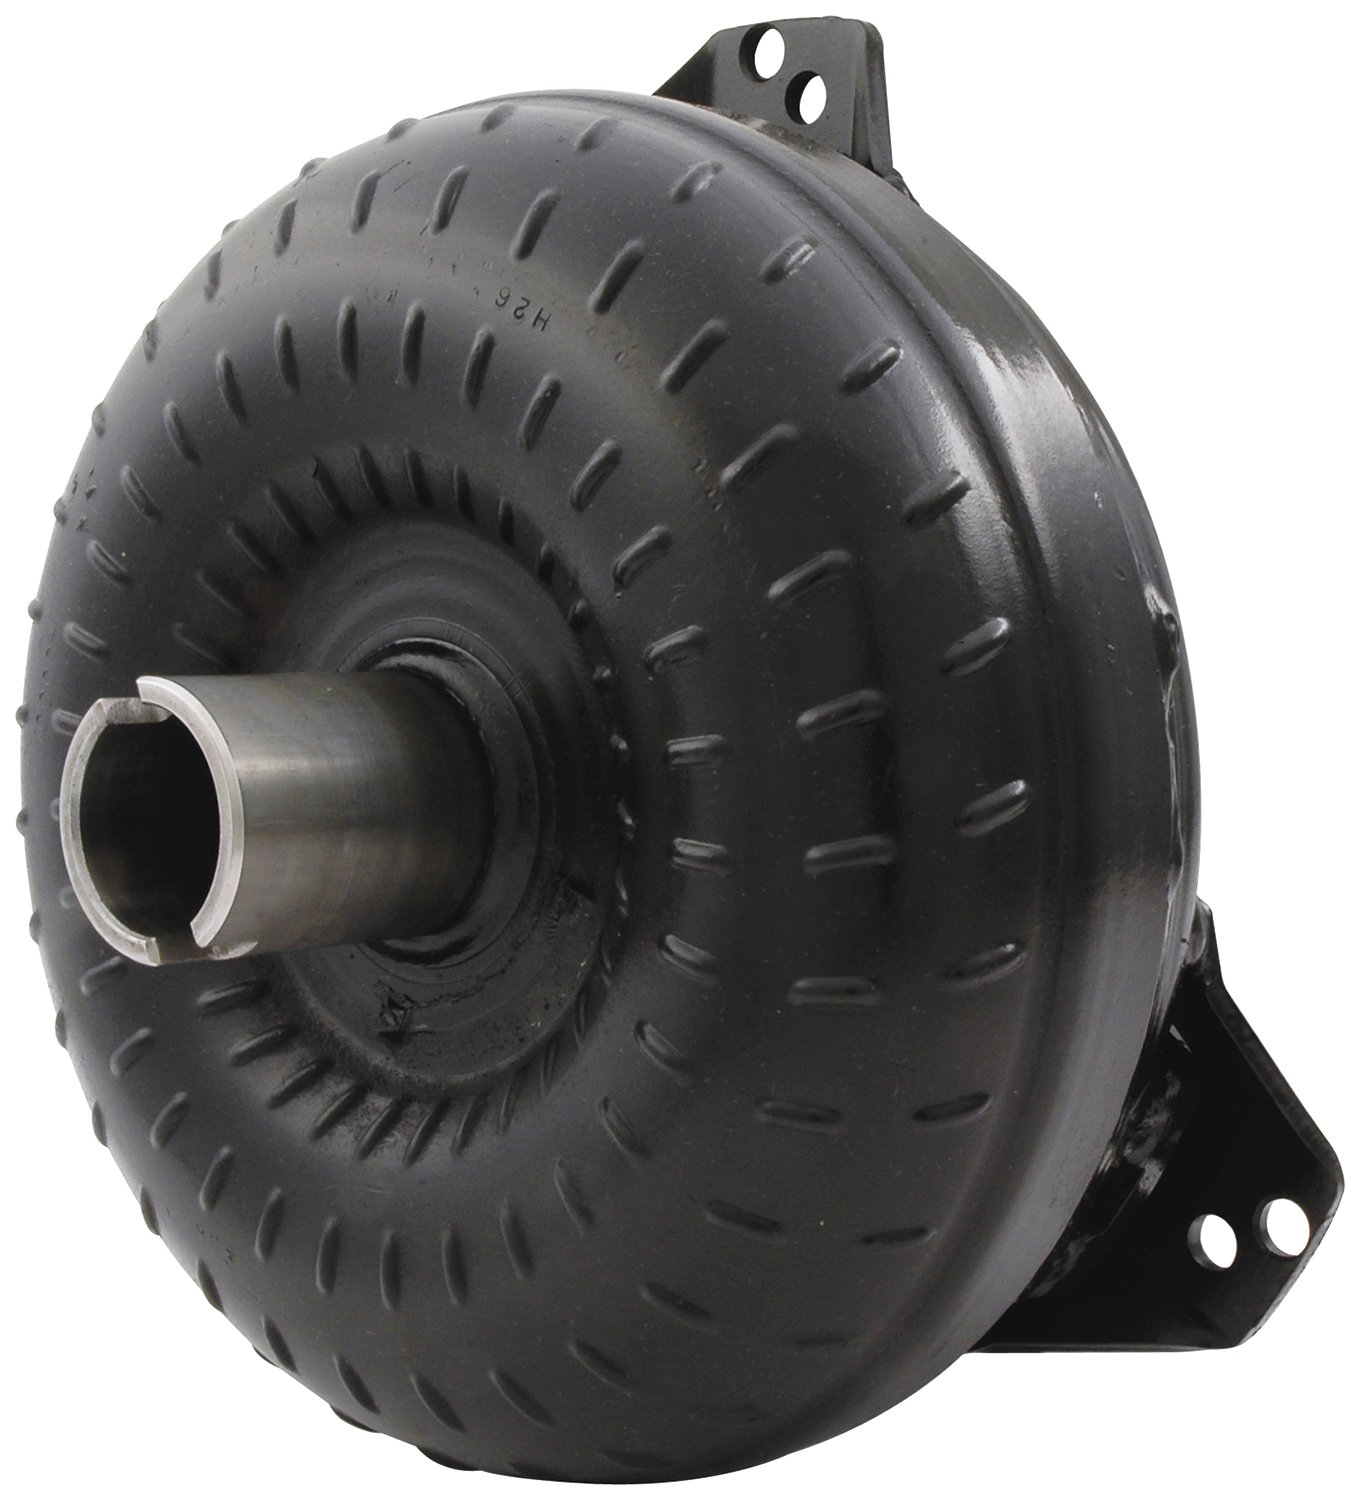 Allstar Performance ALL26904 10'' Diameter 350/400 Transmission 3500+ RPM Stall Speed Torque Converter